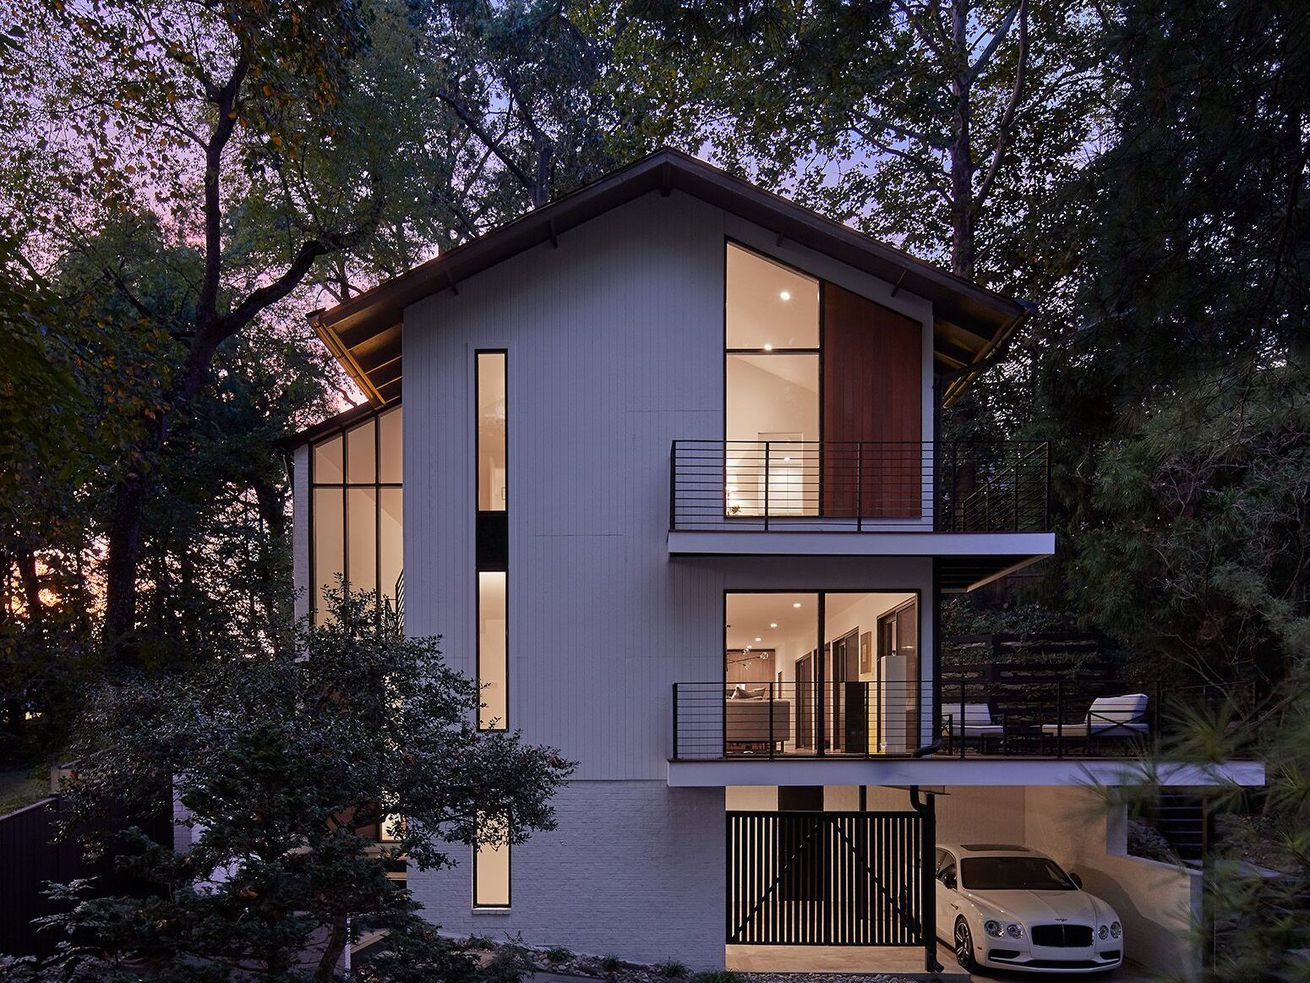 Front of house at dusk, featuring pitched roof and two levels of decks.